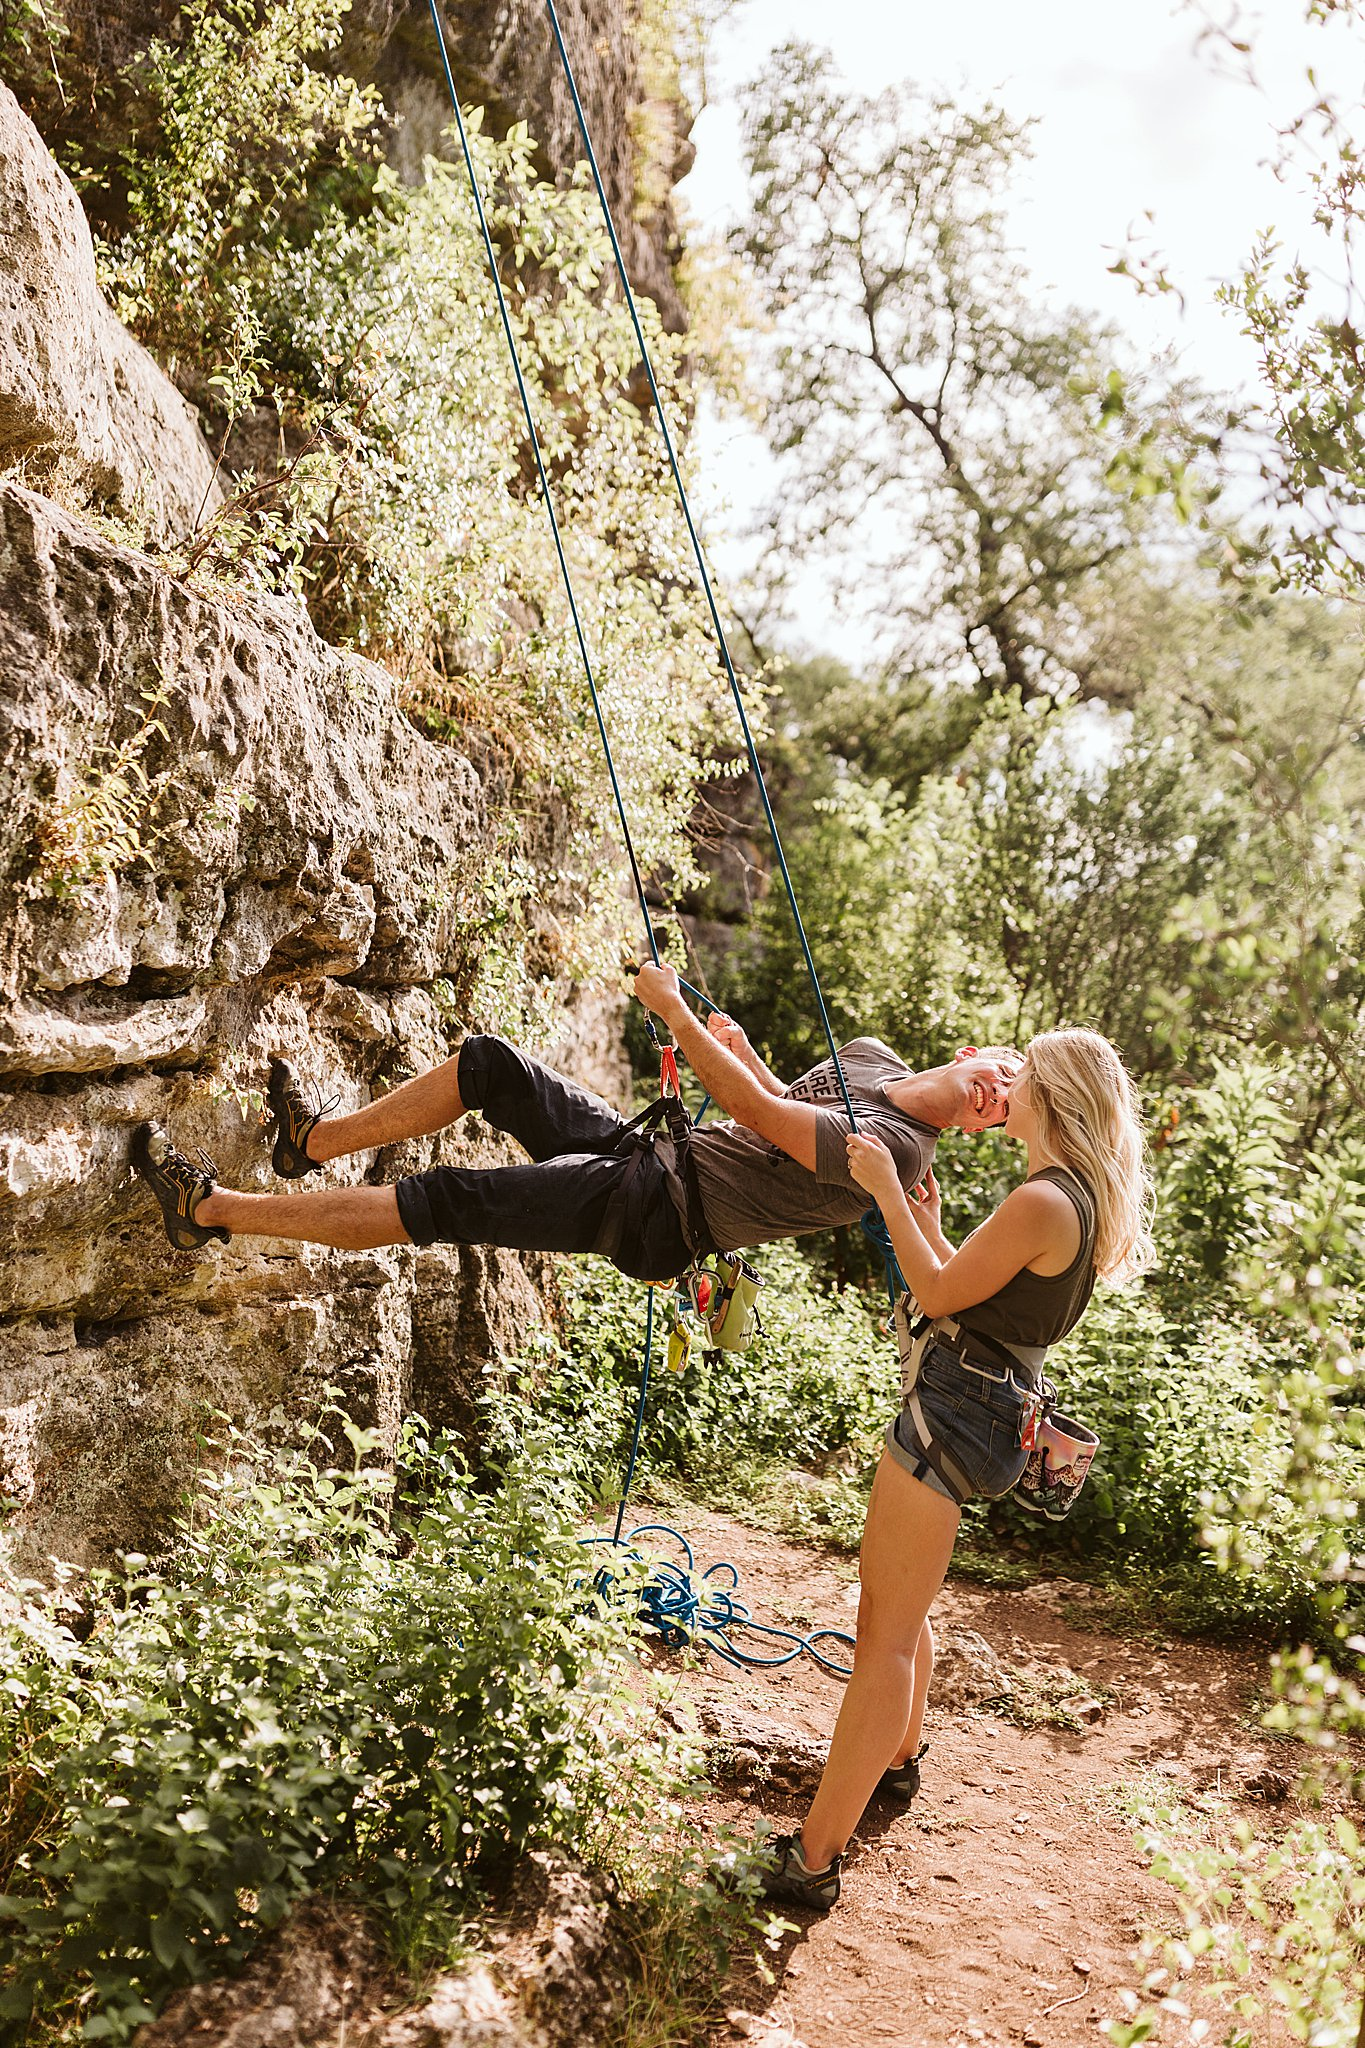 Wilderlove Co_Wedding Photographer_Dripping Springs Photography_Adventure Engagemenet_Rock Climbing Engagement_Hill Country Photographer_North Texas Photographer_0010.jpg